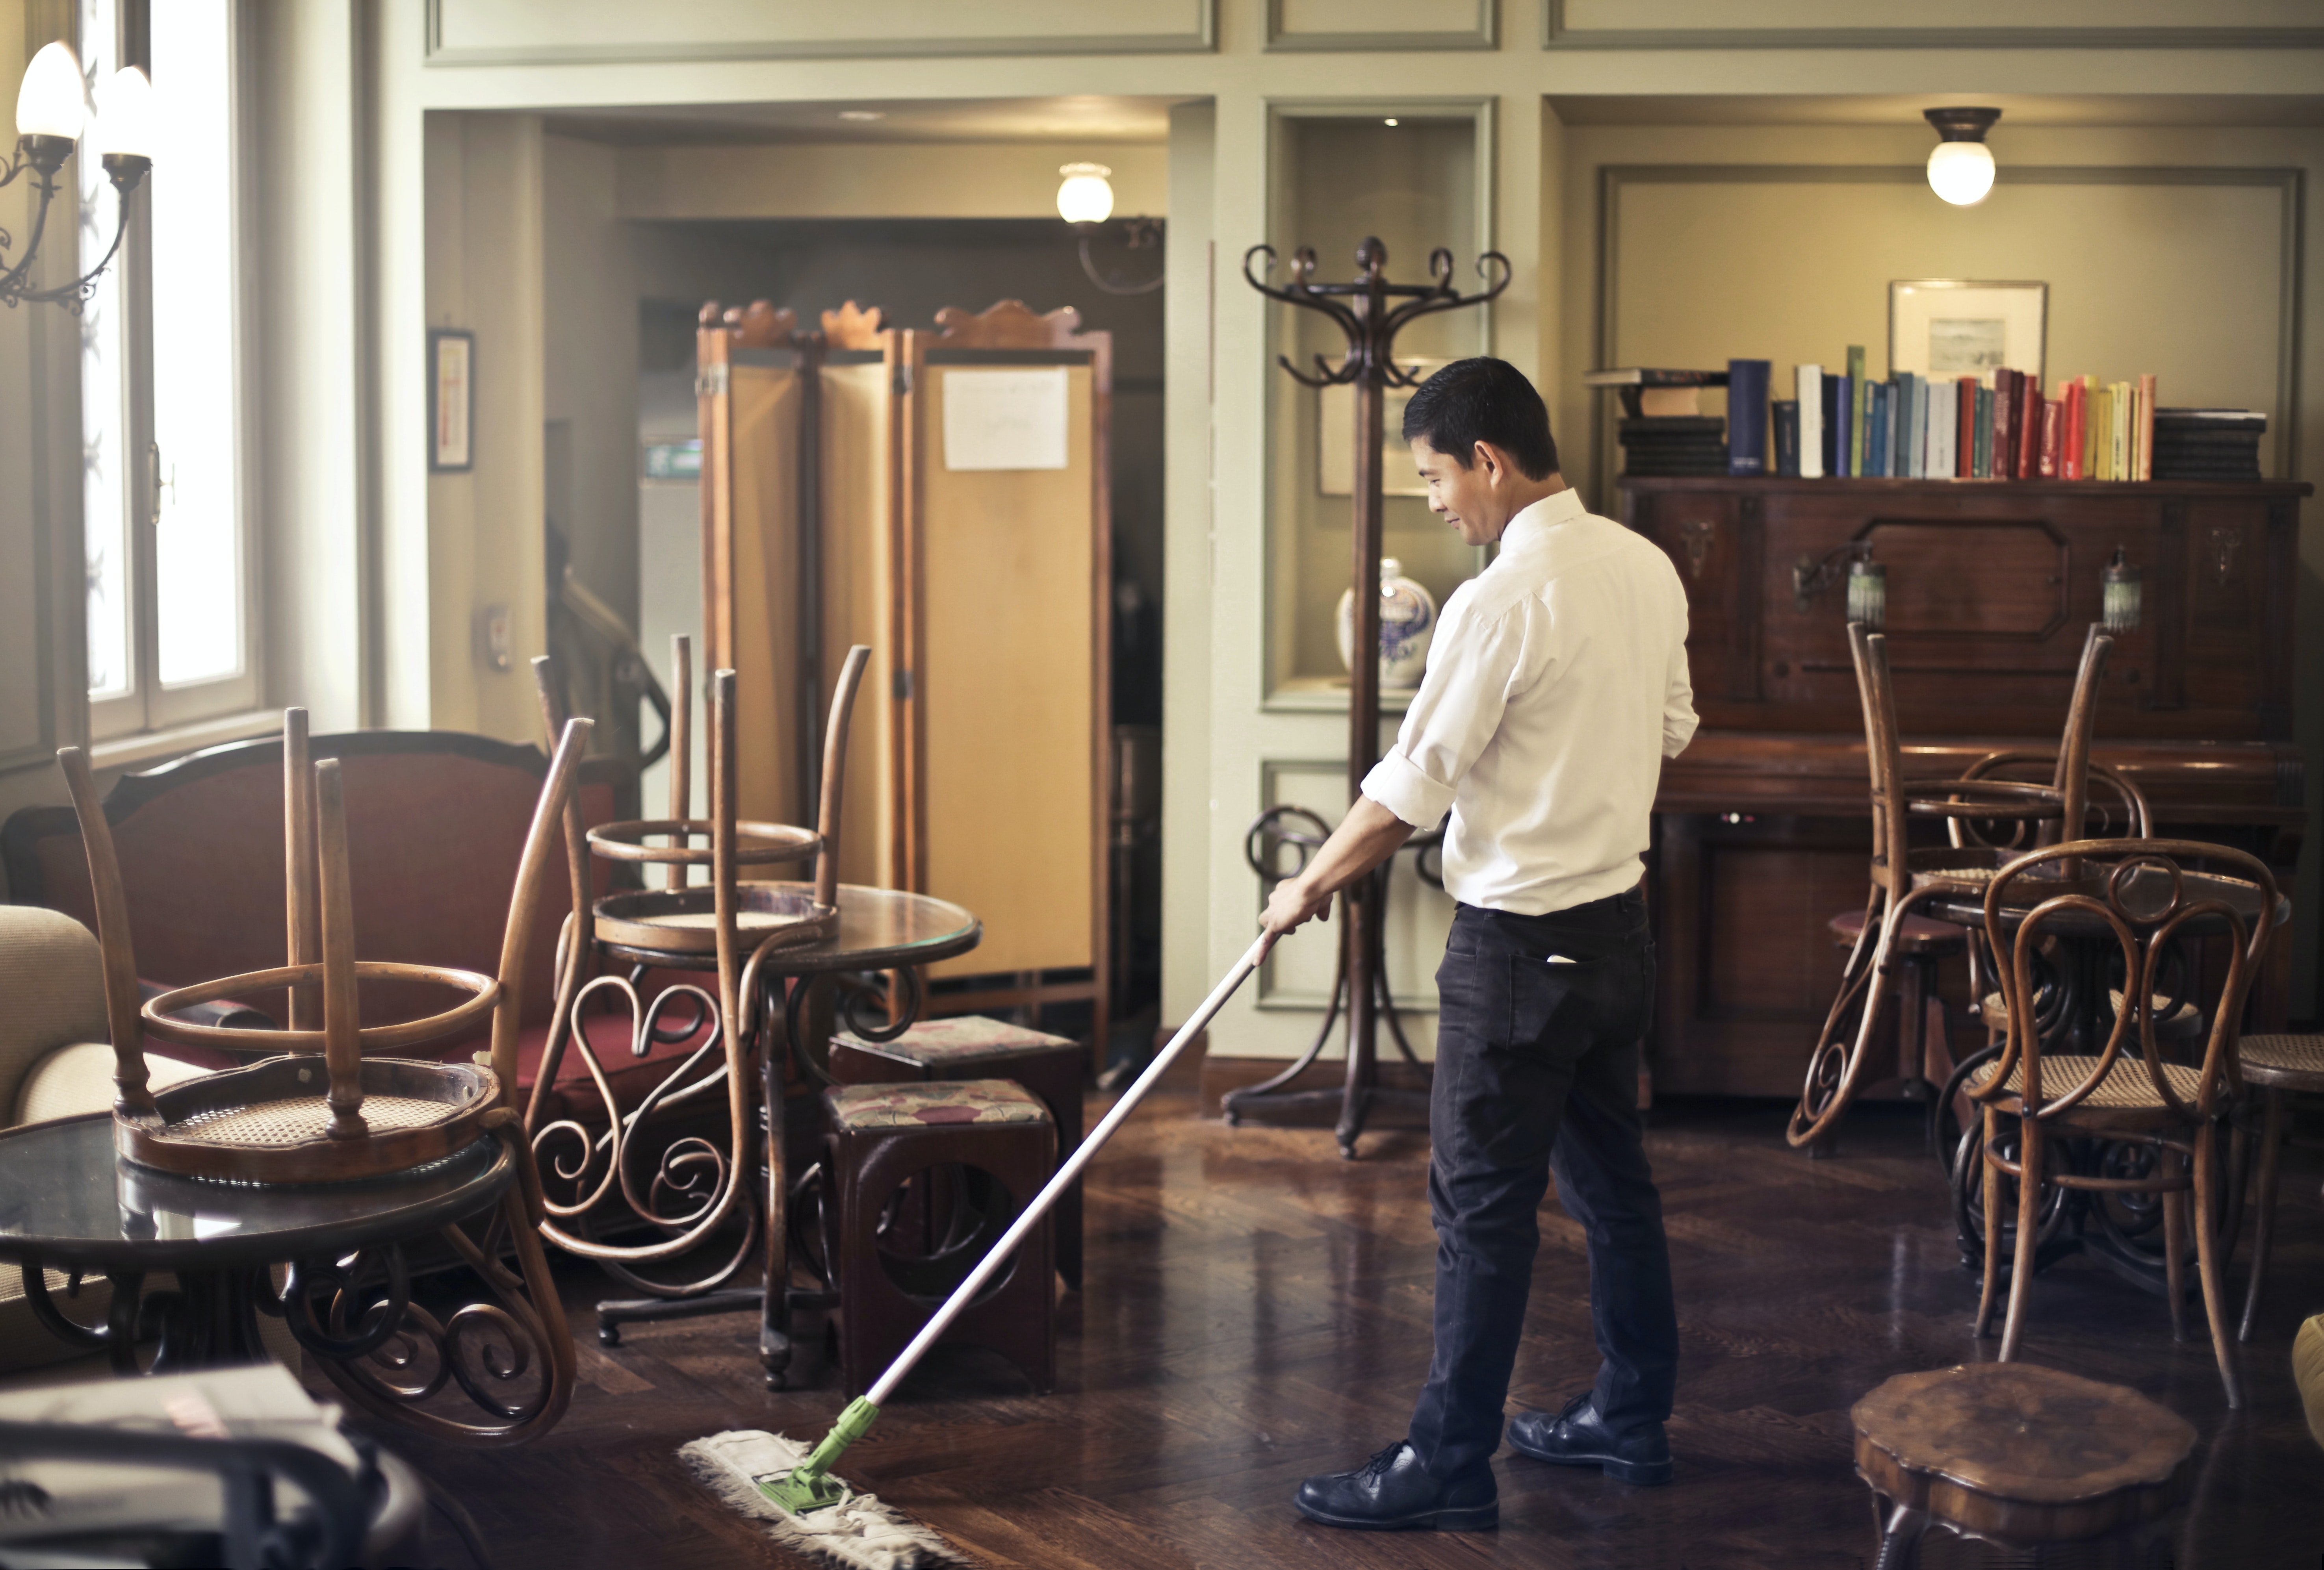 Man mopping the floor | Photo: Pexels